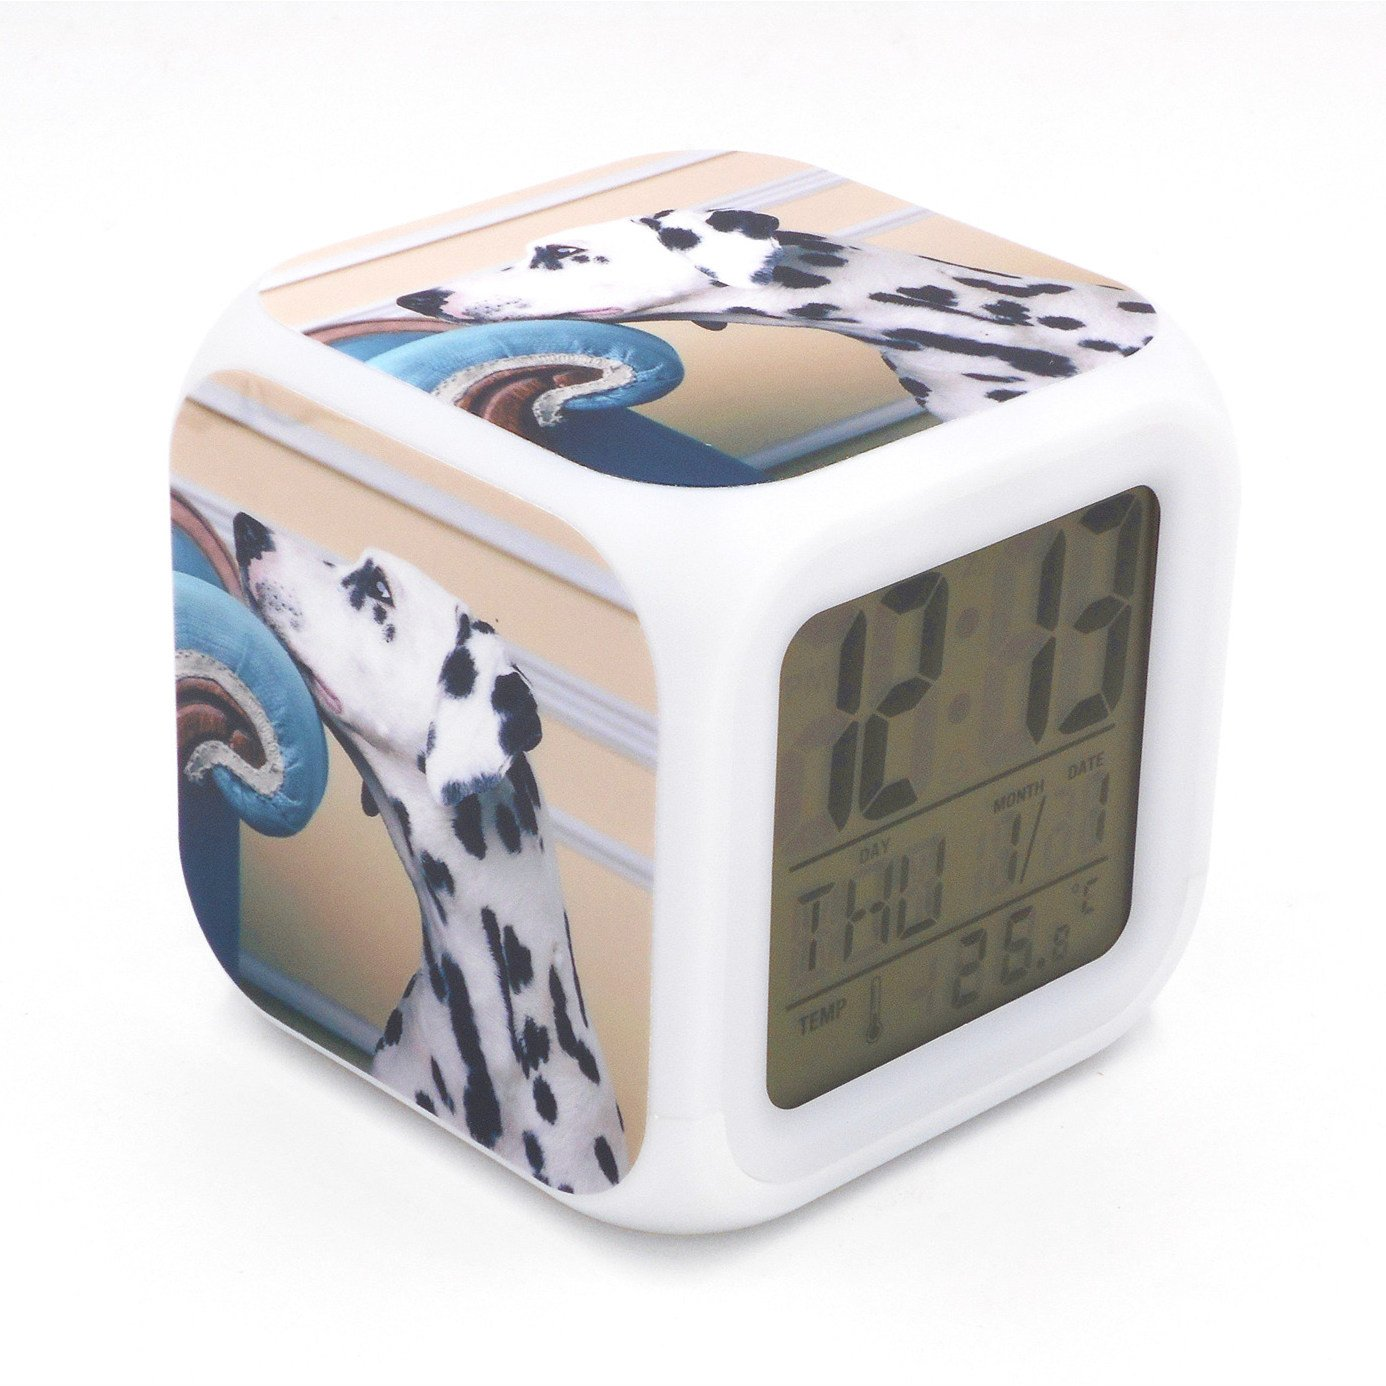 EGS New Dolorous Dalmatian Dog Puppy Animal Digital Alarm Clock Desk Table Led Alarm Clock Creative Personalized Multifunctional Battery Alarm Clock Special Toy Gift for Unisex Kids Adults